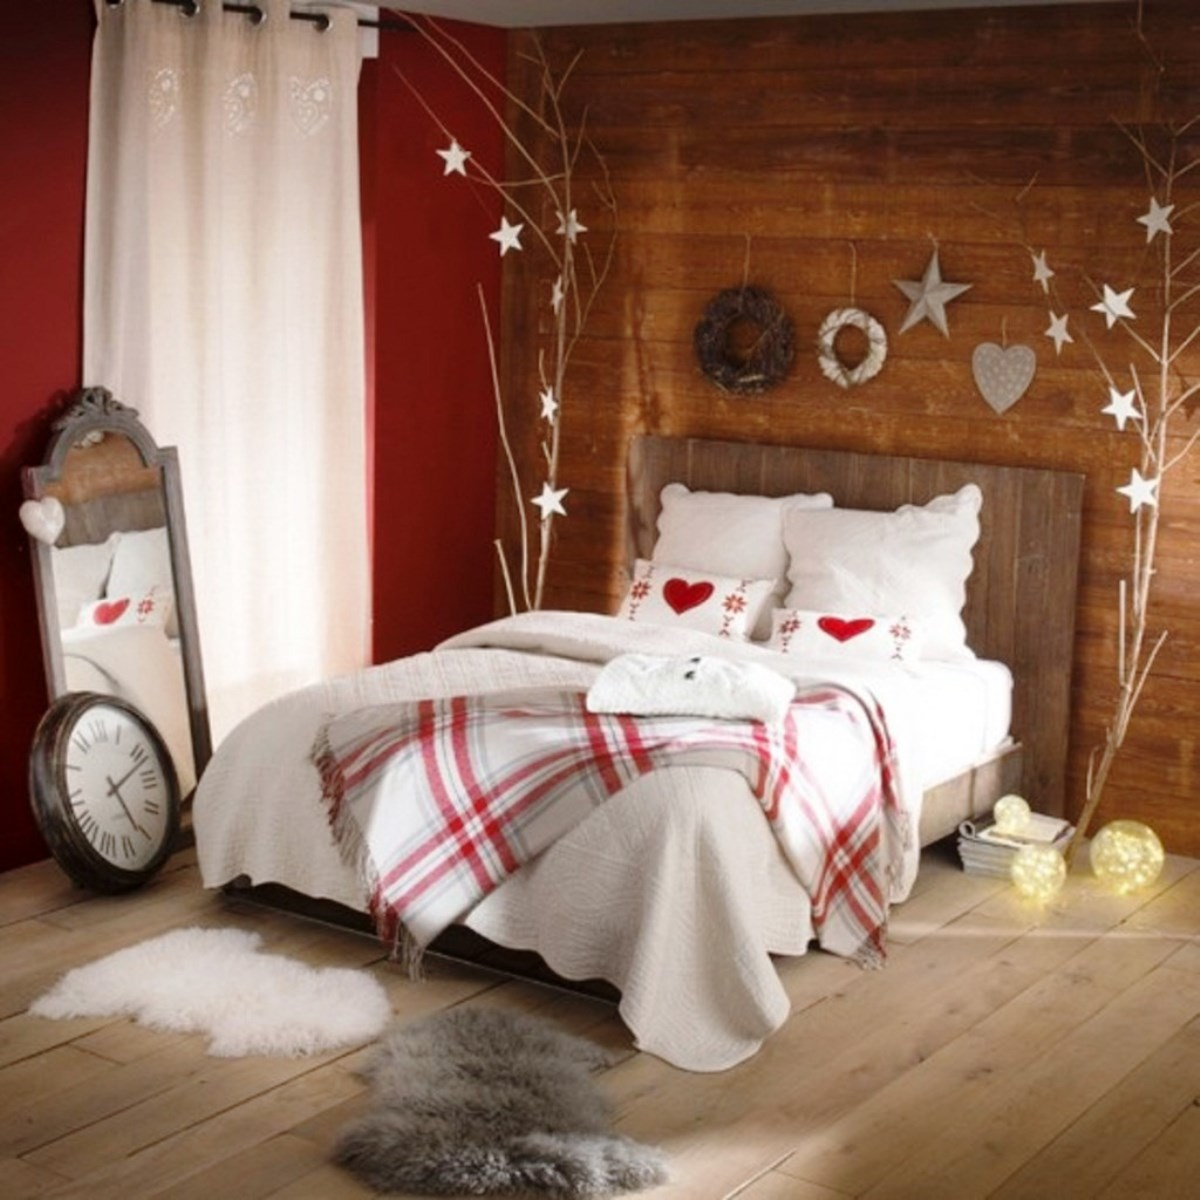 30 christmas bedroom decorations ideas for Bedroom decorating ideas pictures